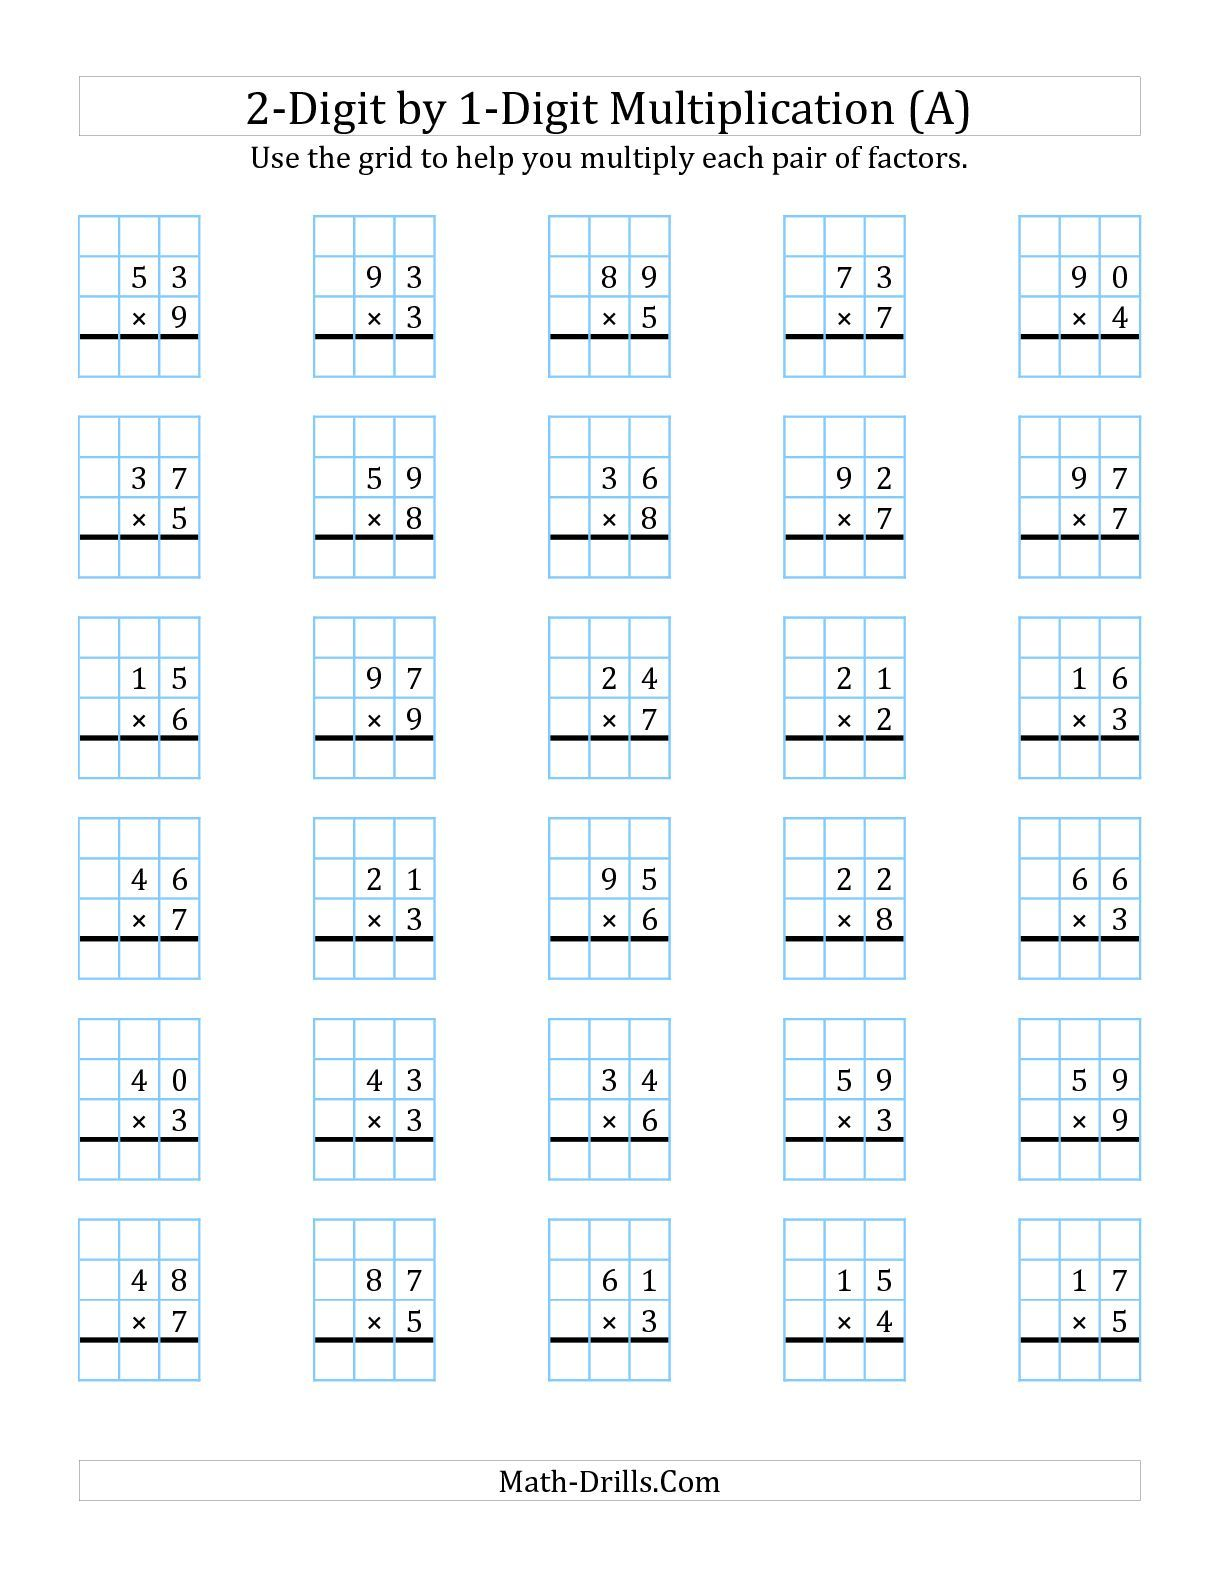 The 2Digit by 1Digit Multiplication with Grid Support (A